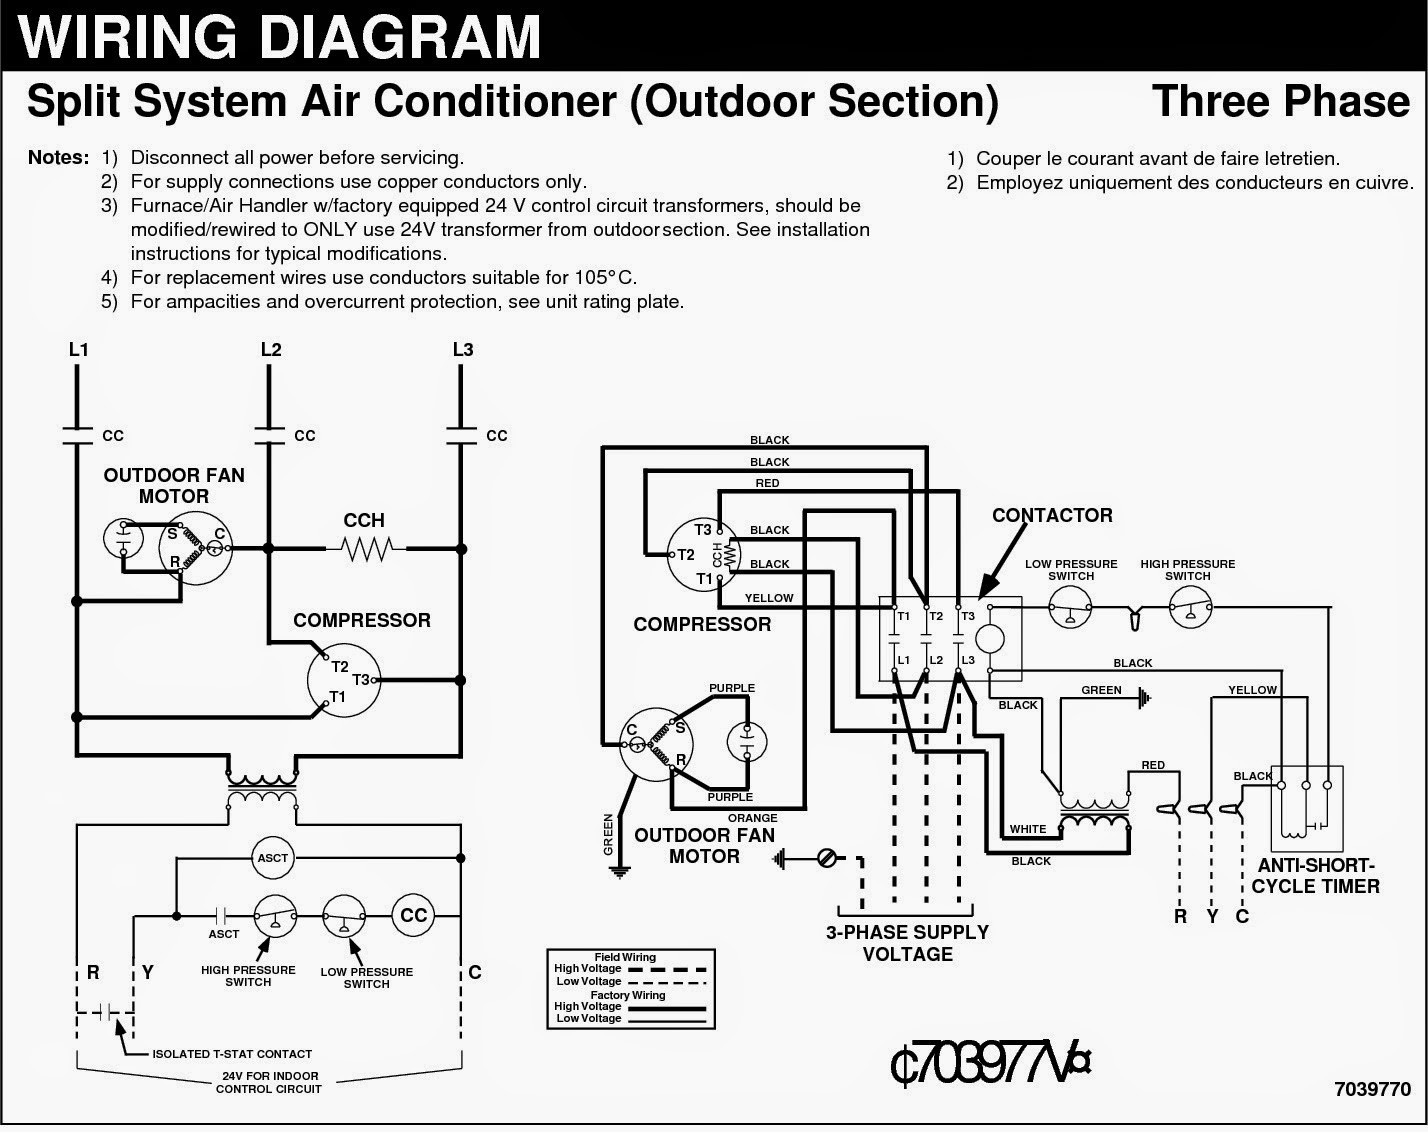 Fig.13: Split air Cooling Units - Three Phase - Electrical Wiring Diagram